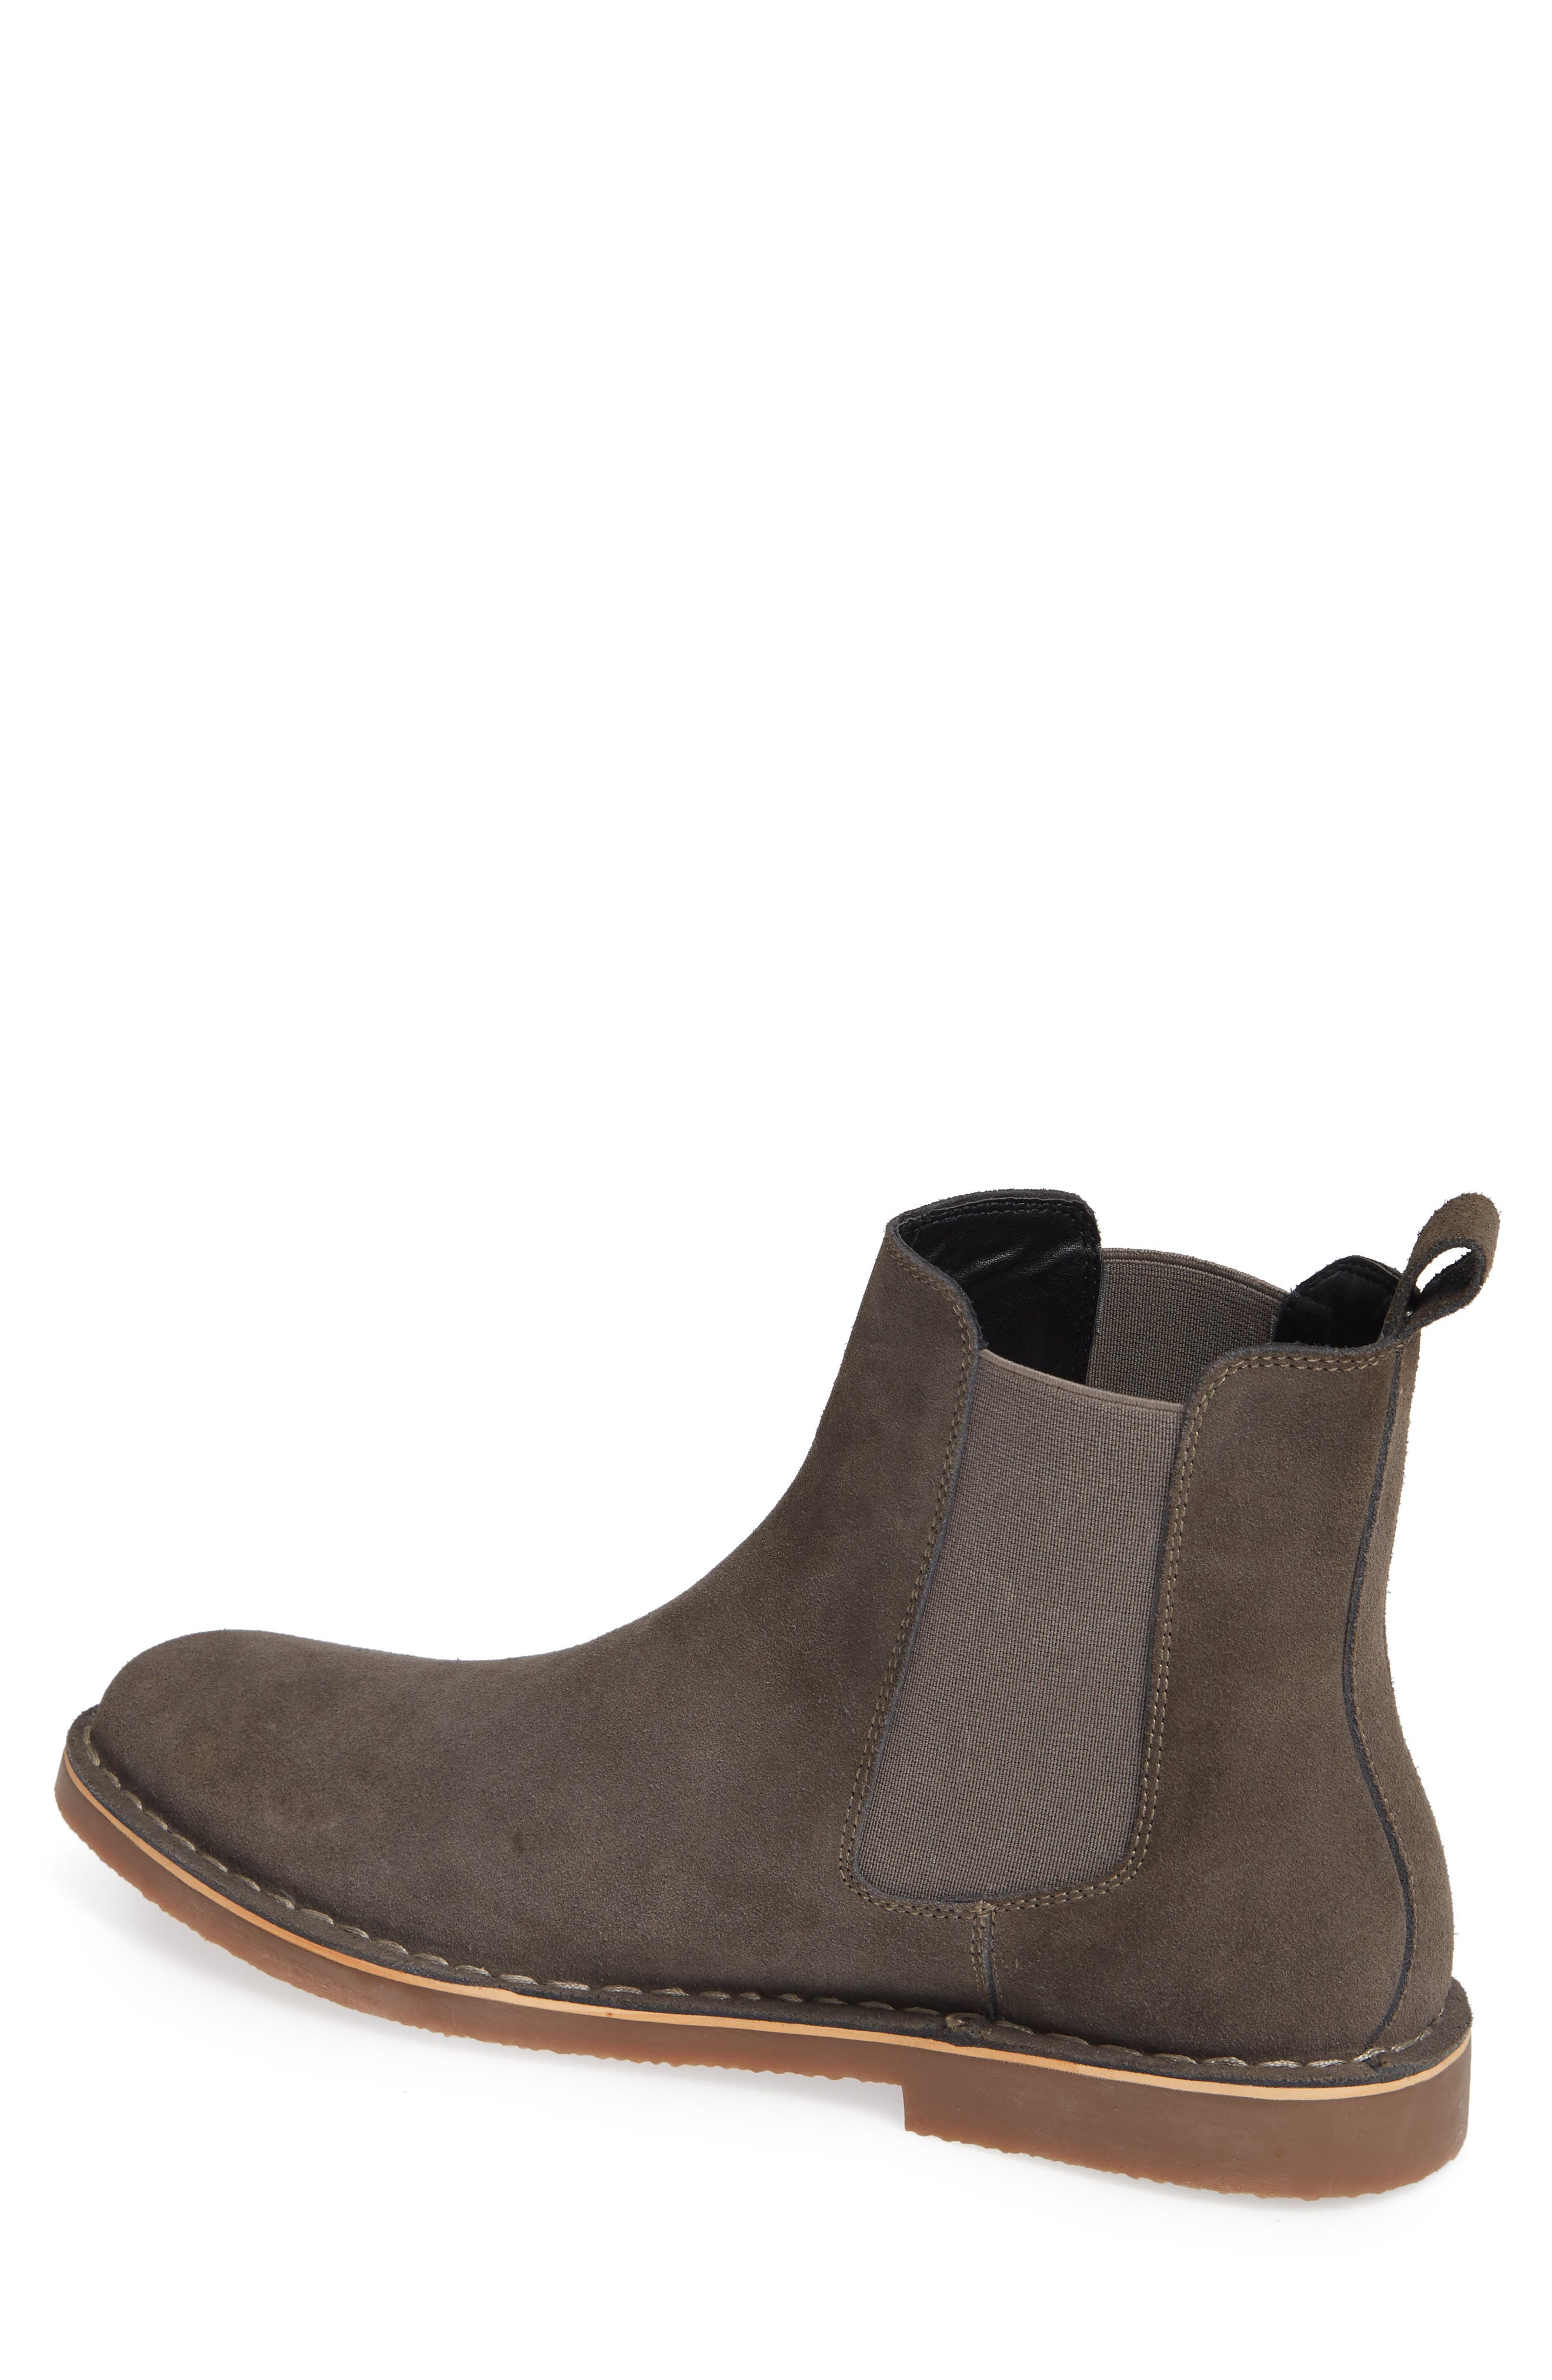 Mesa Chelsea Boot,                             Alternate thumbnail 2, color,                             Charcoal Suede